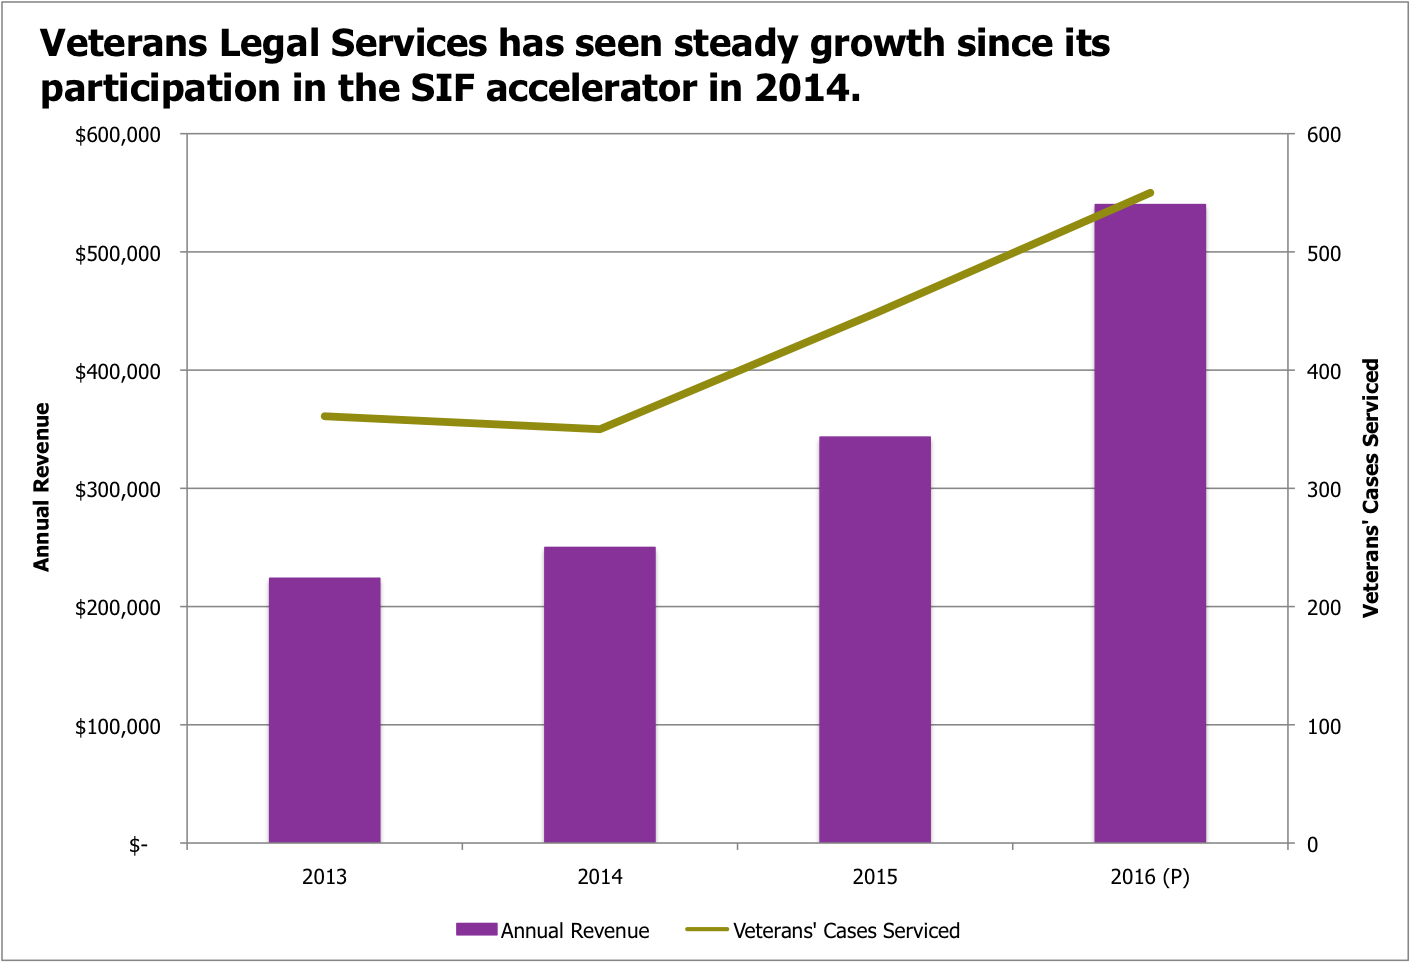 Veterans Legal Services Growth Graph